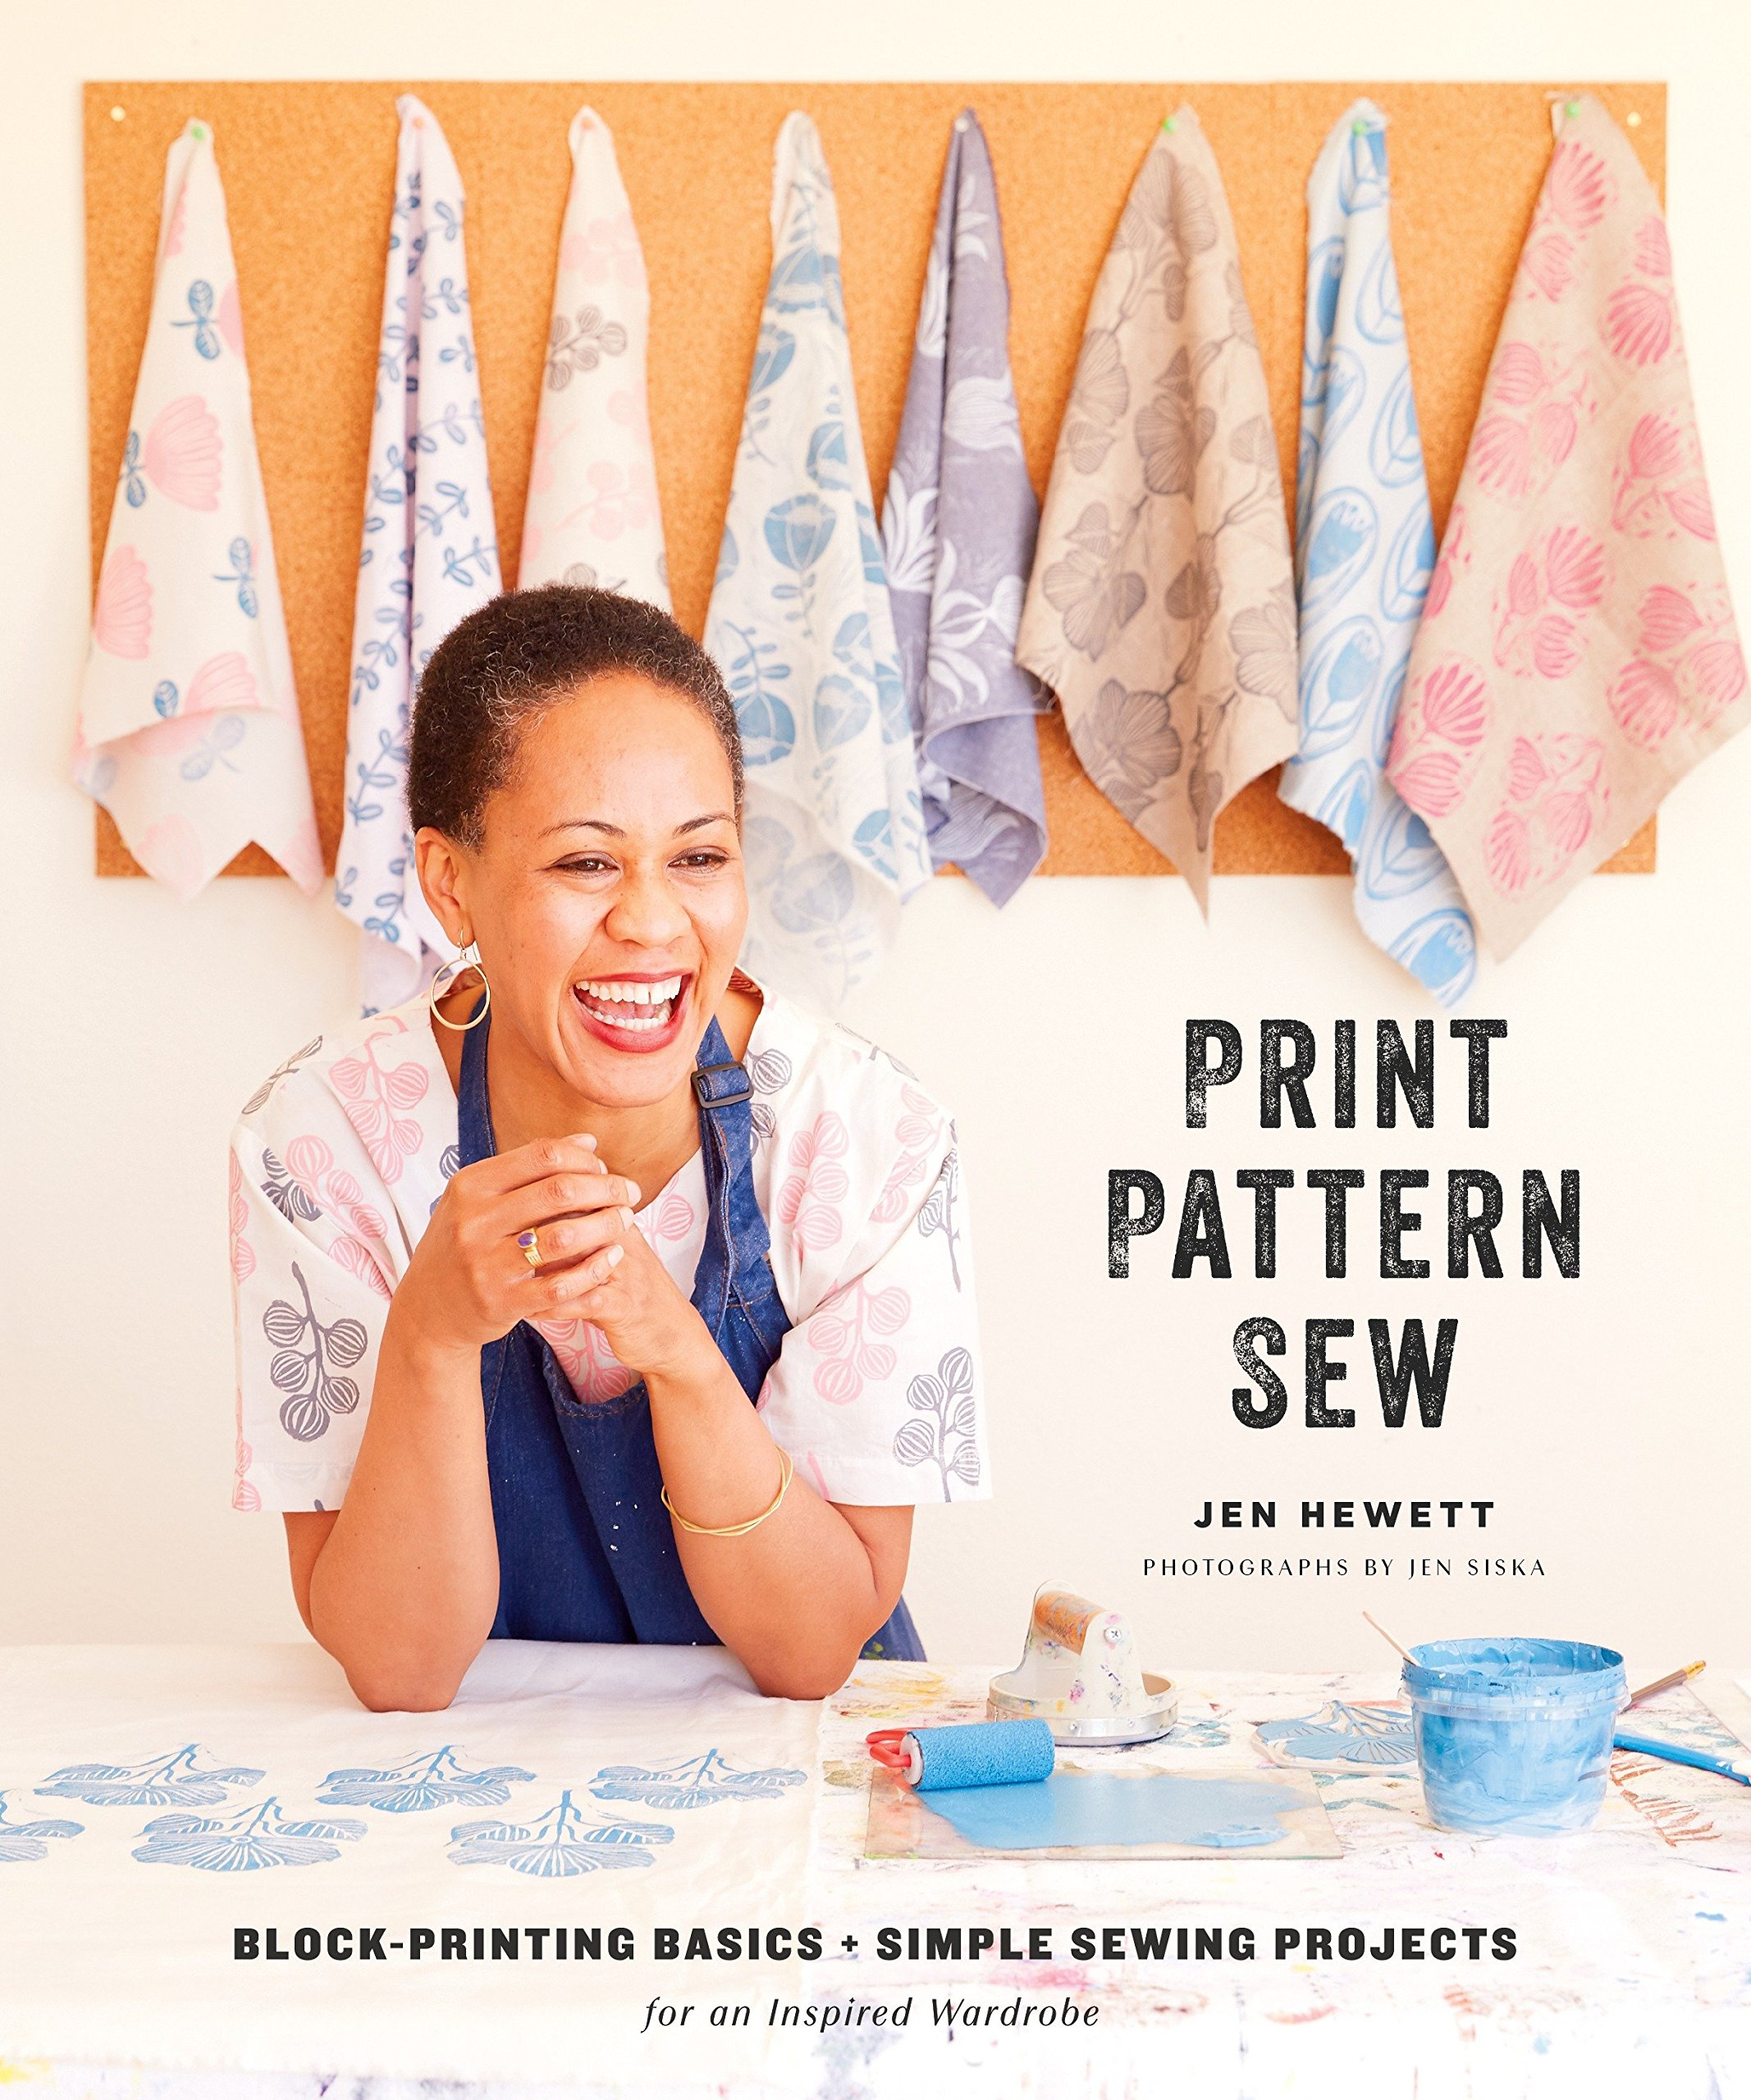 Print, Pattern, Sew: Block-Printing Basics + Simple Sewing Projects for an Inspired Wardrobe by Jen Hewett